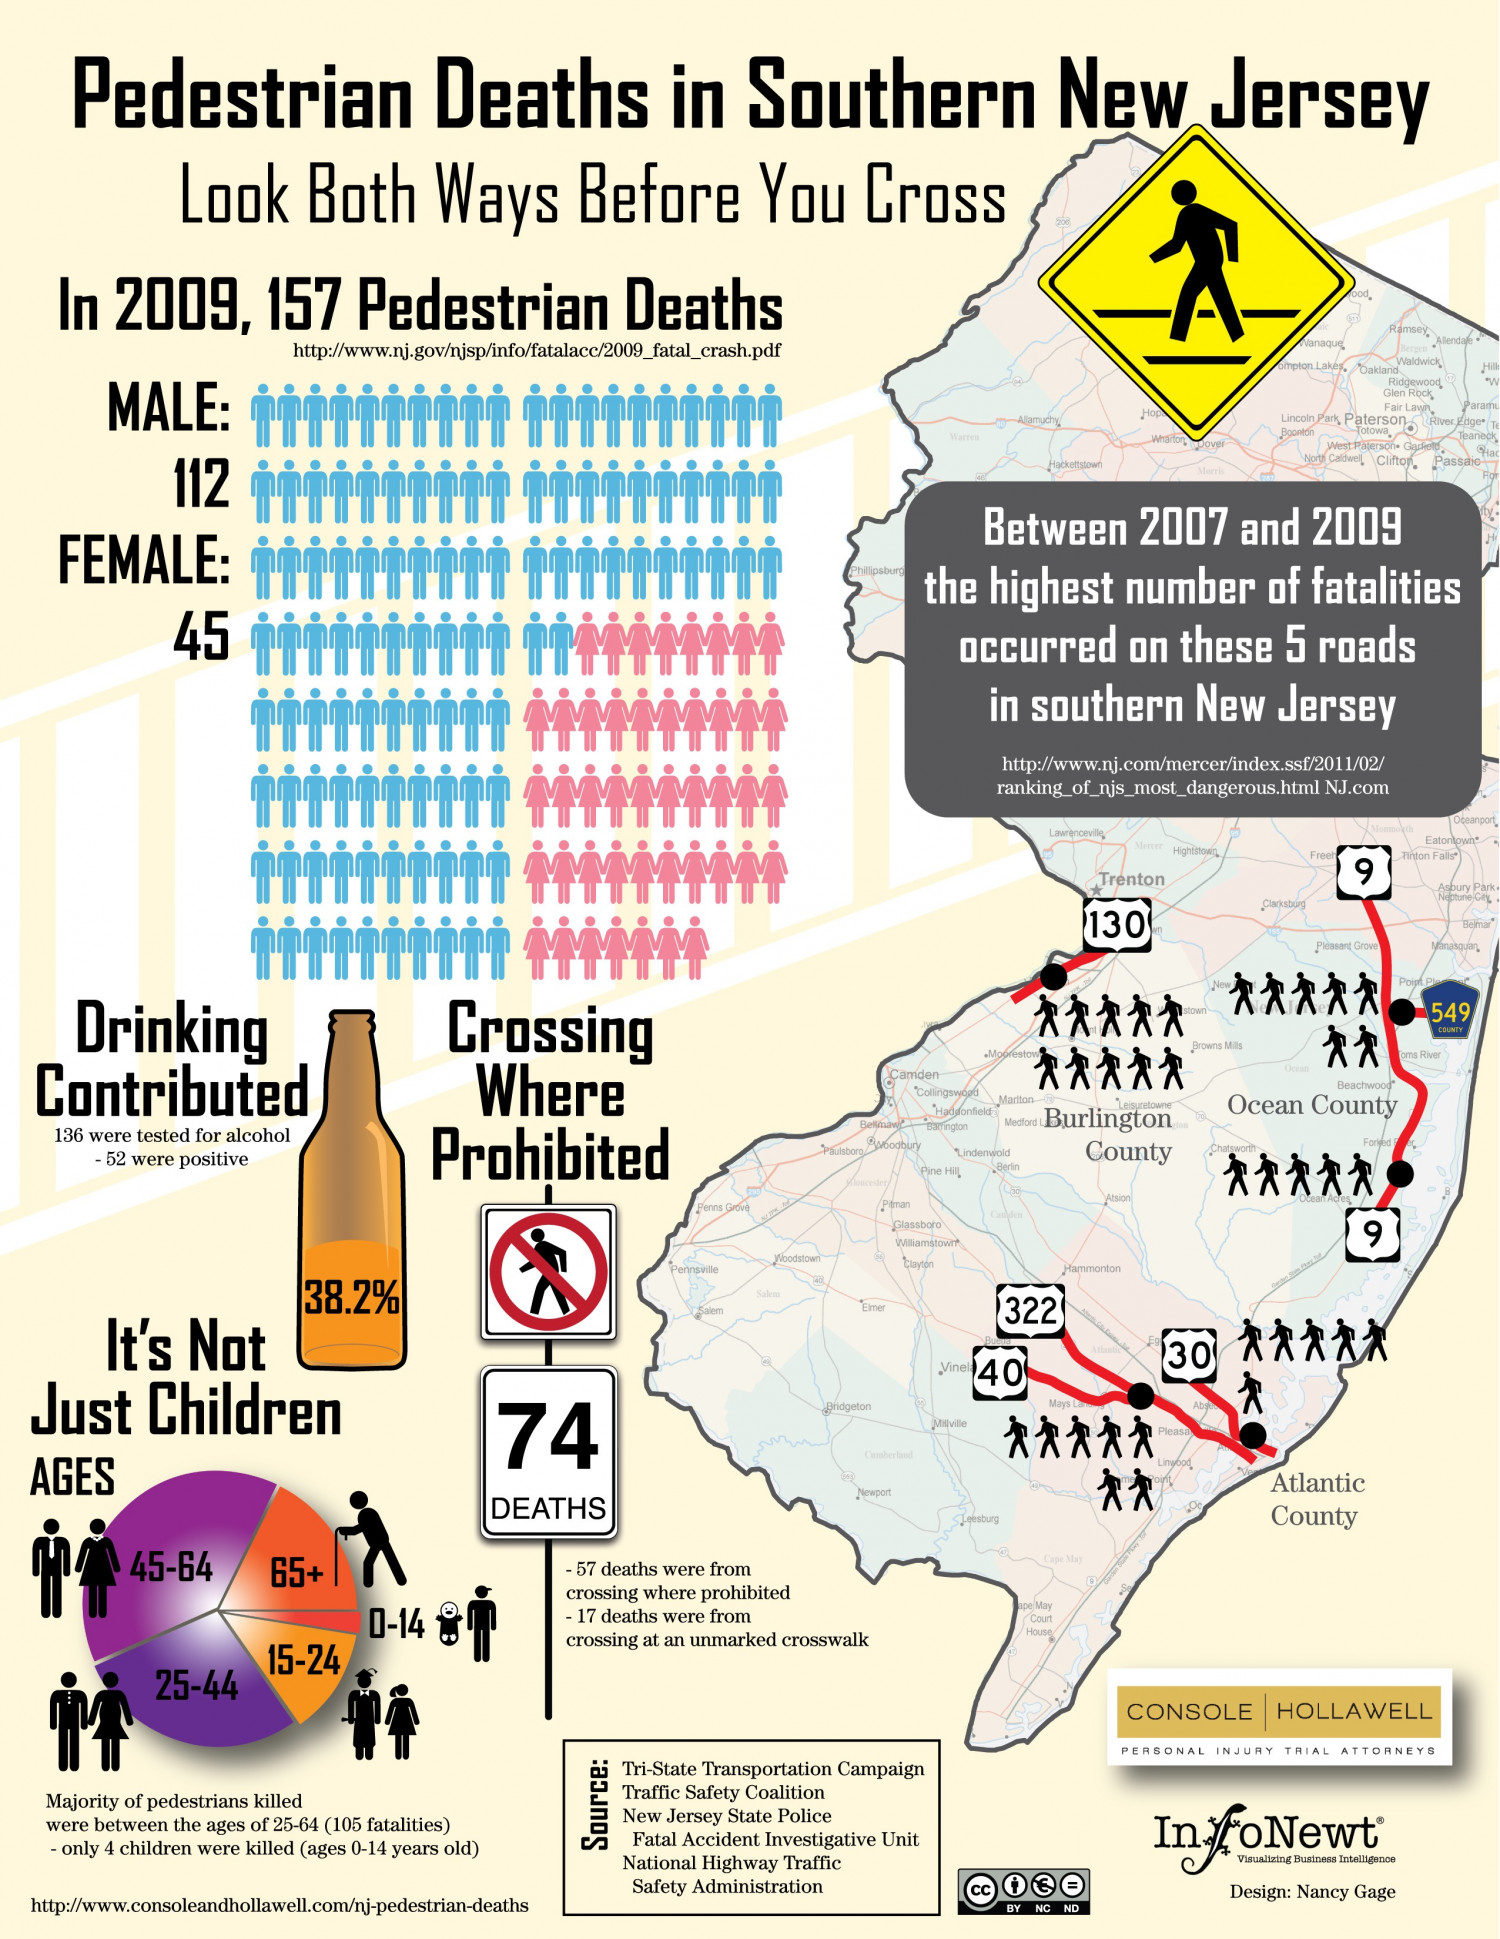 Pedestrian Deaths in Southern New Jersey Infographic